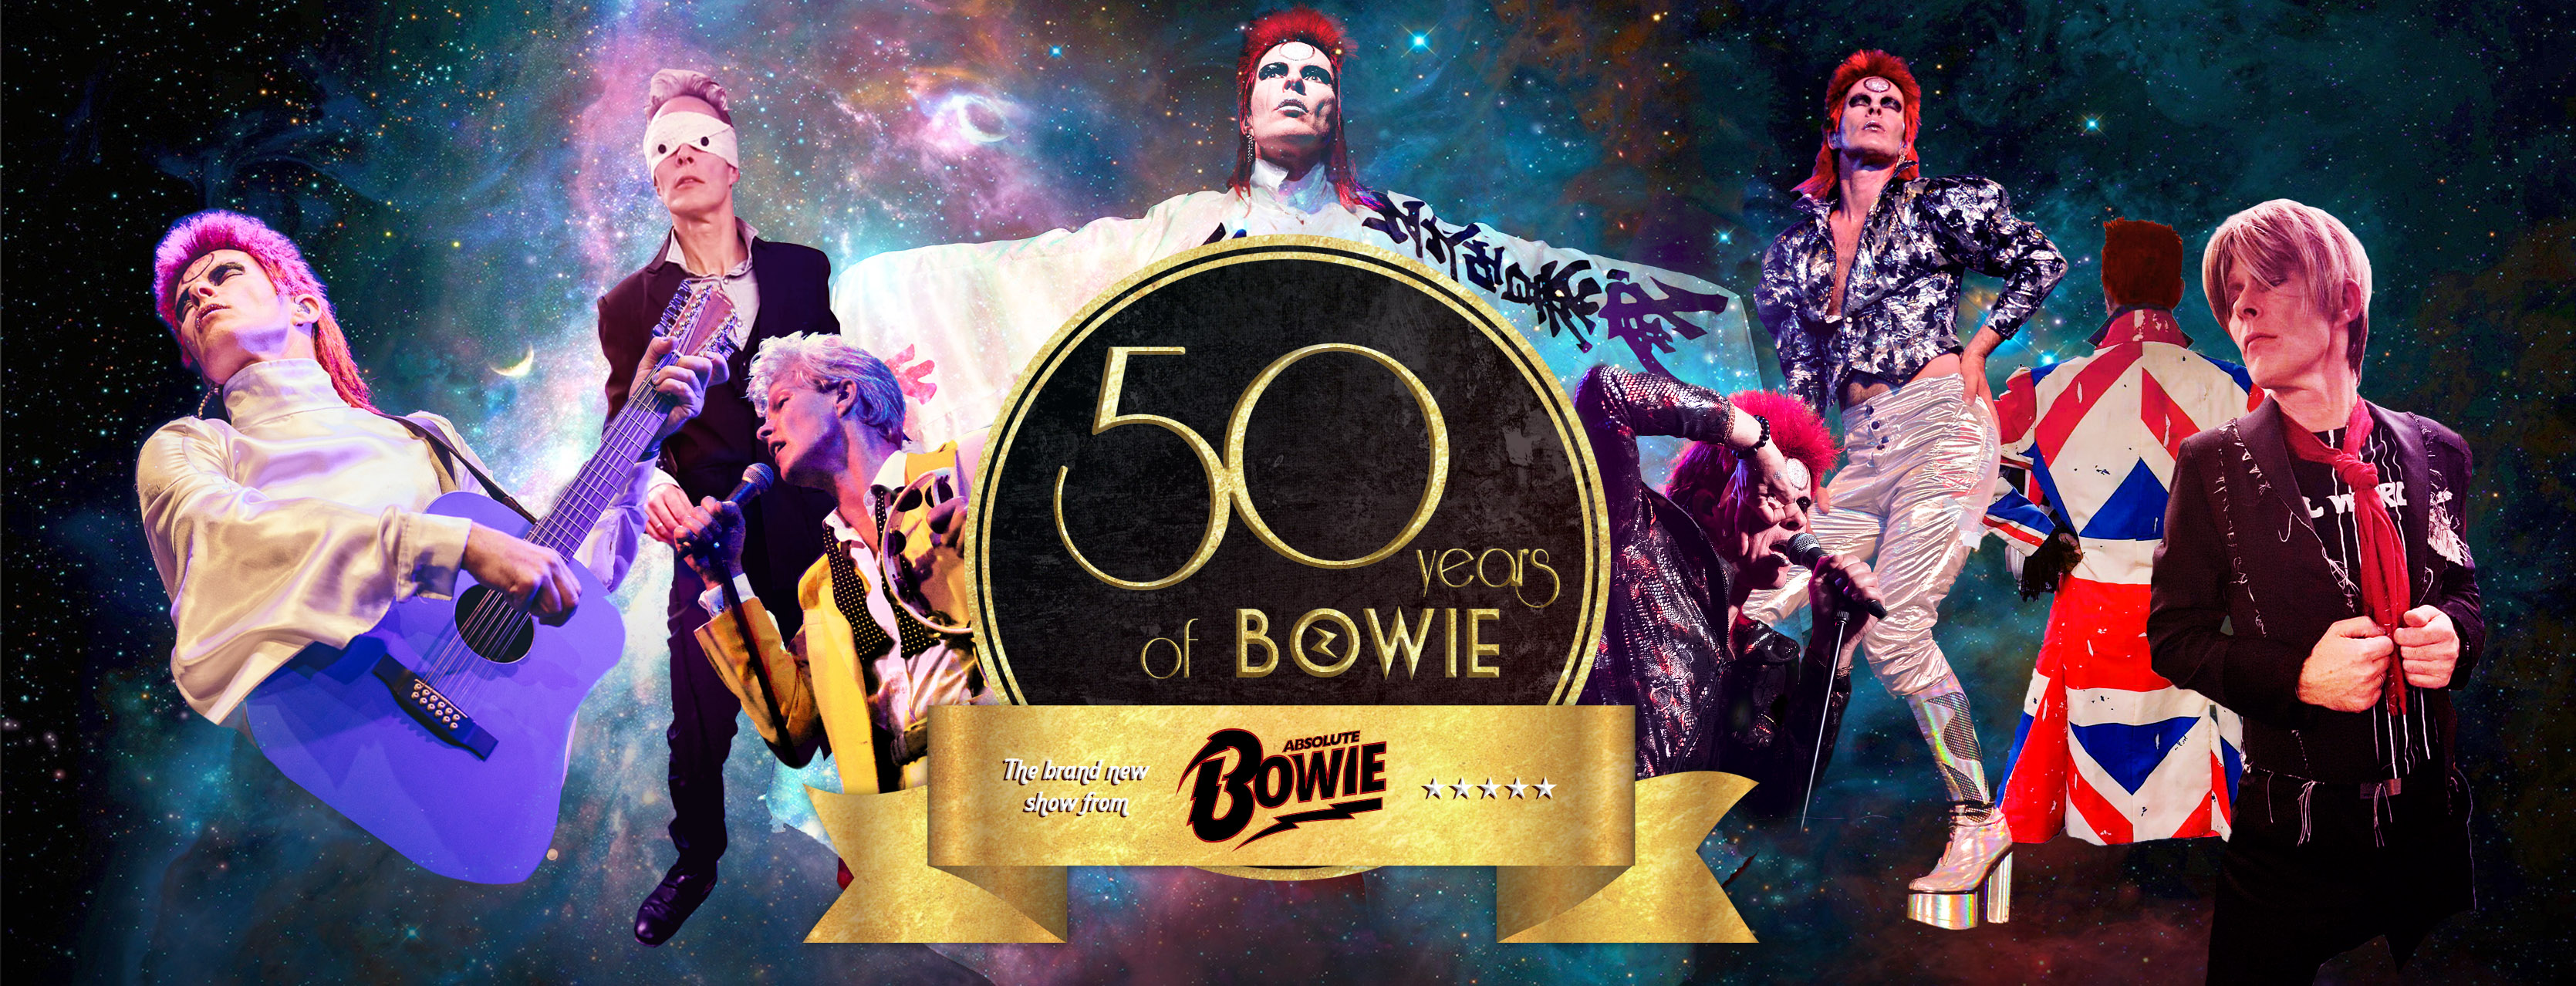 ABSOLUTE BOWIE PRESENT 50 YEARS OF BOWIE